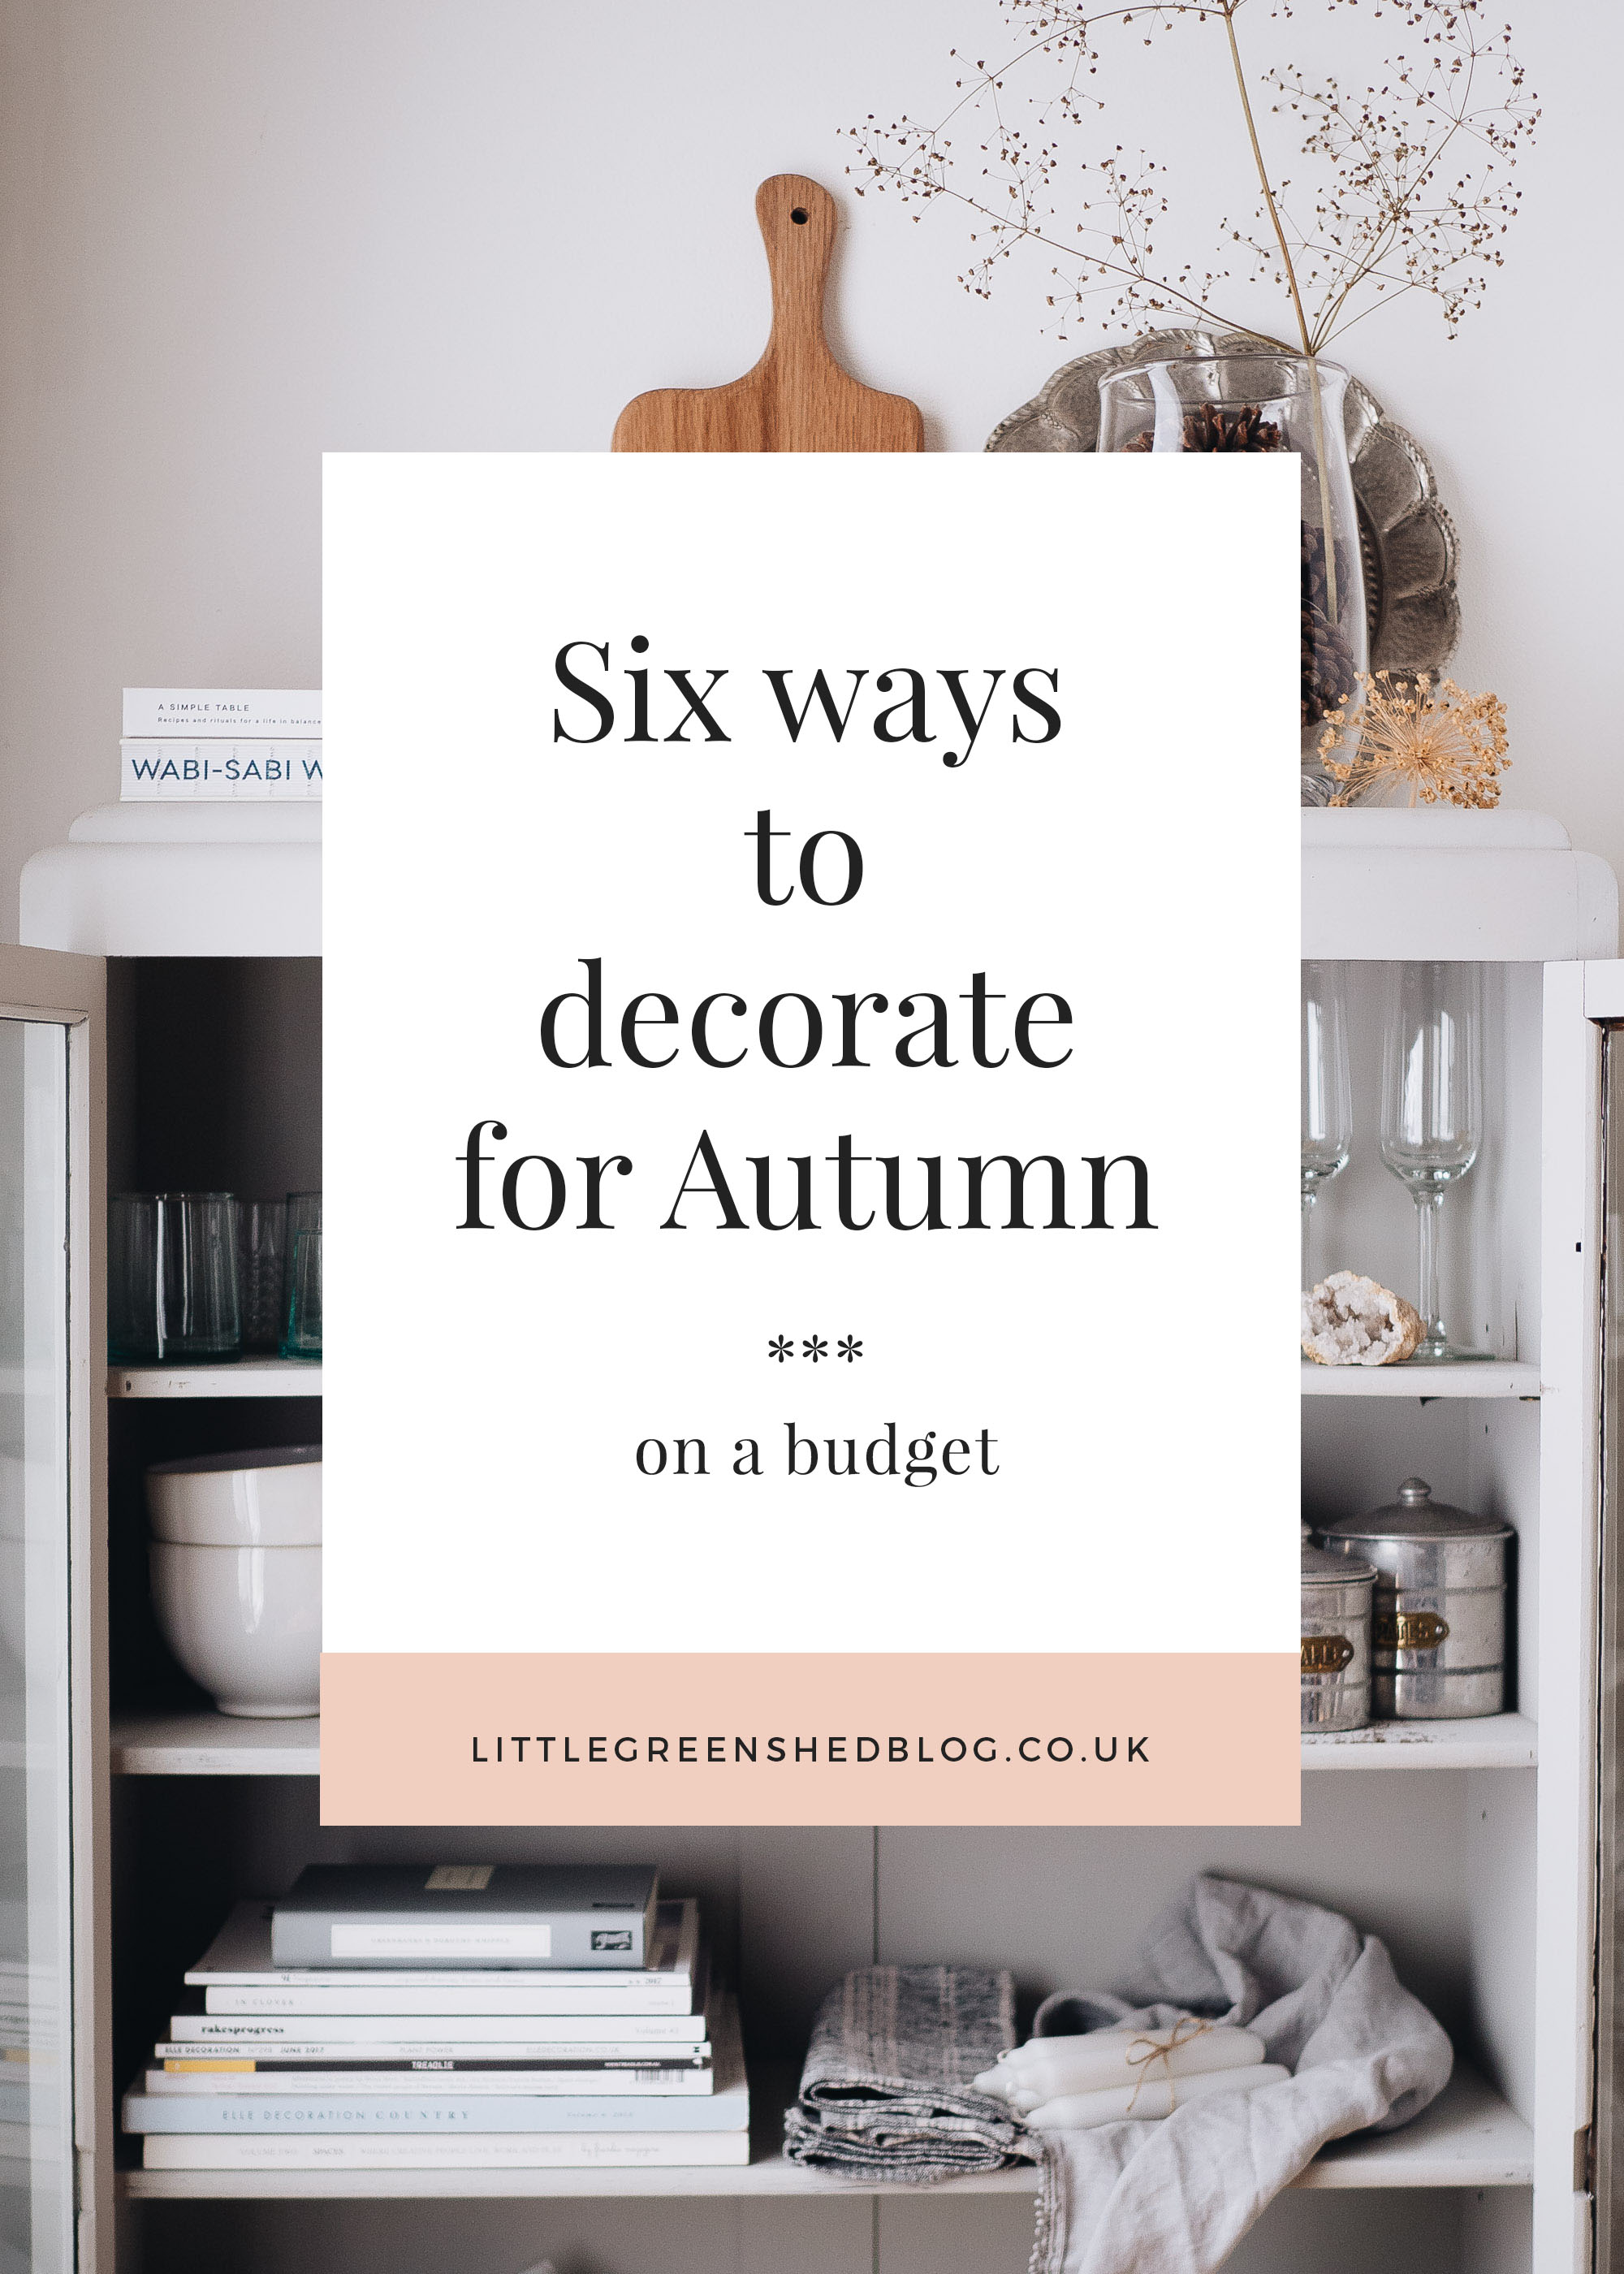 decorate on a budget for autumn